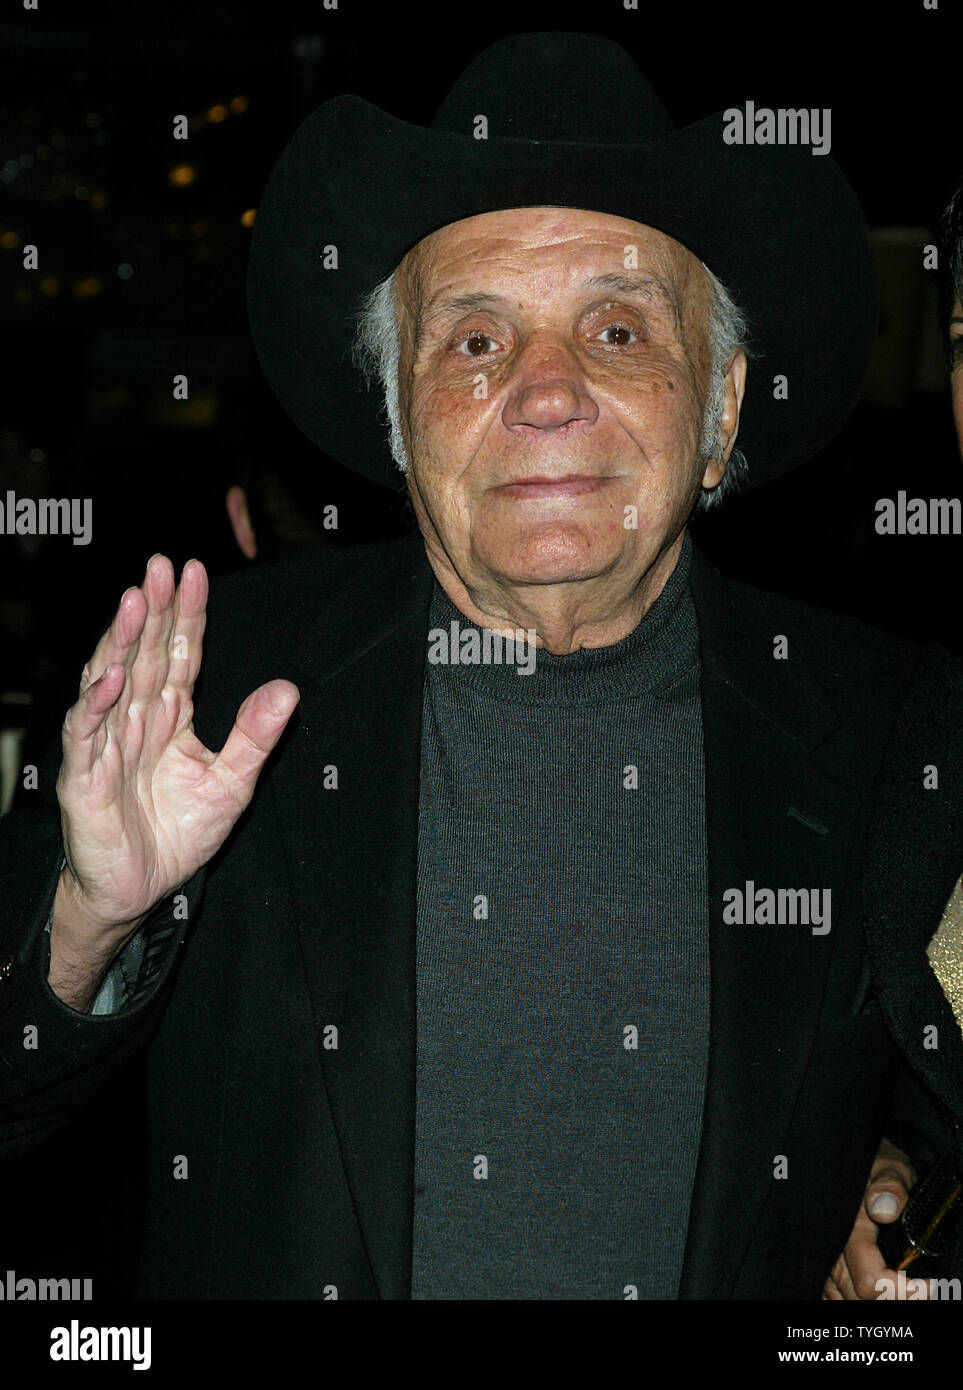 Jake Lamotta Stock Photos & Jake Lamotta Stock Images - Alamy